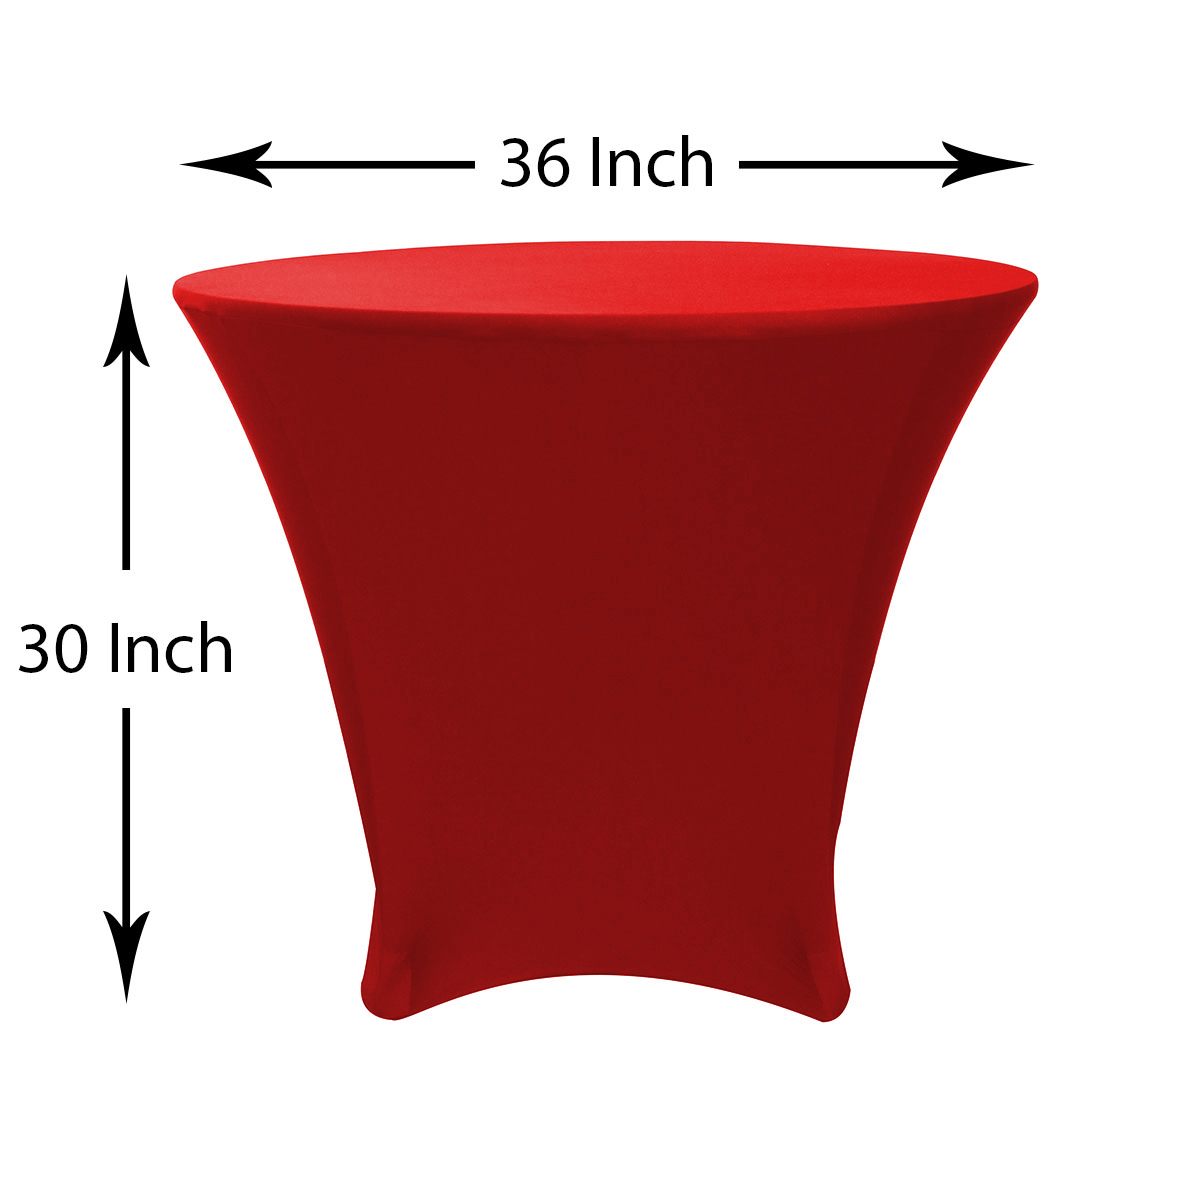 36-30-inch-lowboy-cocktail-spandex-table-covers-red-dimensions.jpg